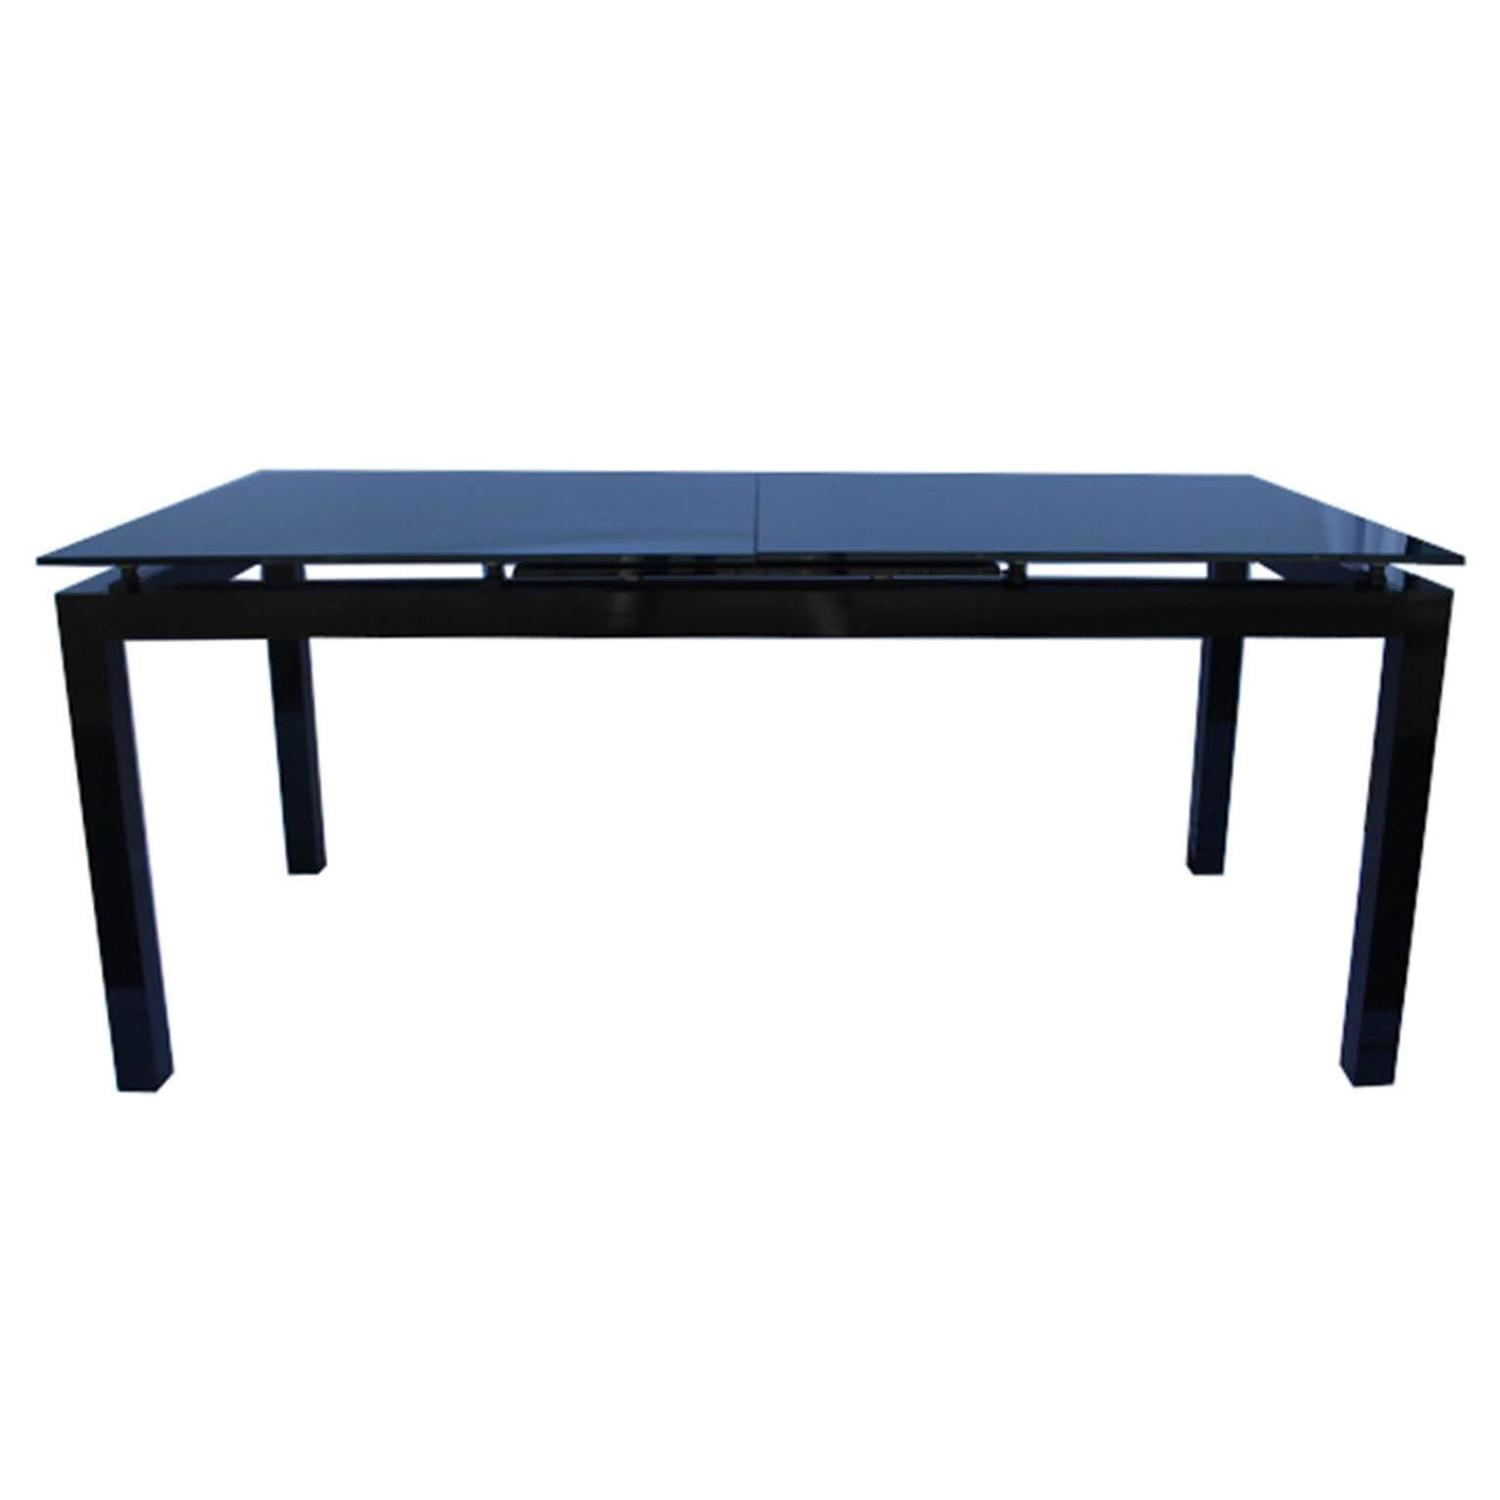 first glass dining table by ligne roset for sale at 1stdibs. Black Bedroom Furniture Sets. Home Design Ideas